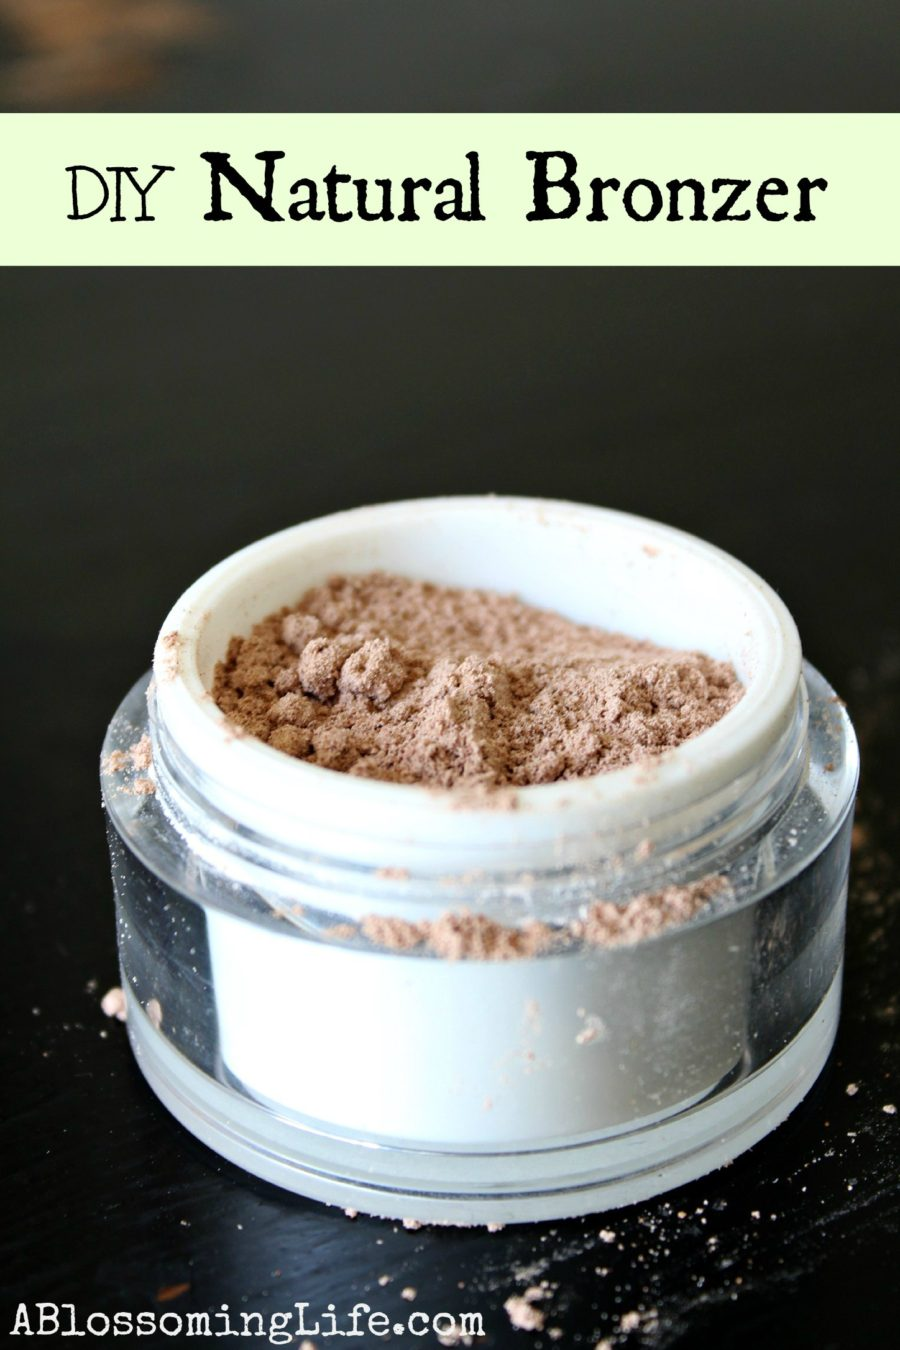 DIY Bronzer in a white and clear container on a black table